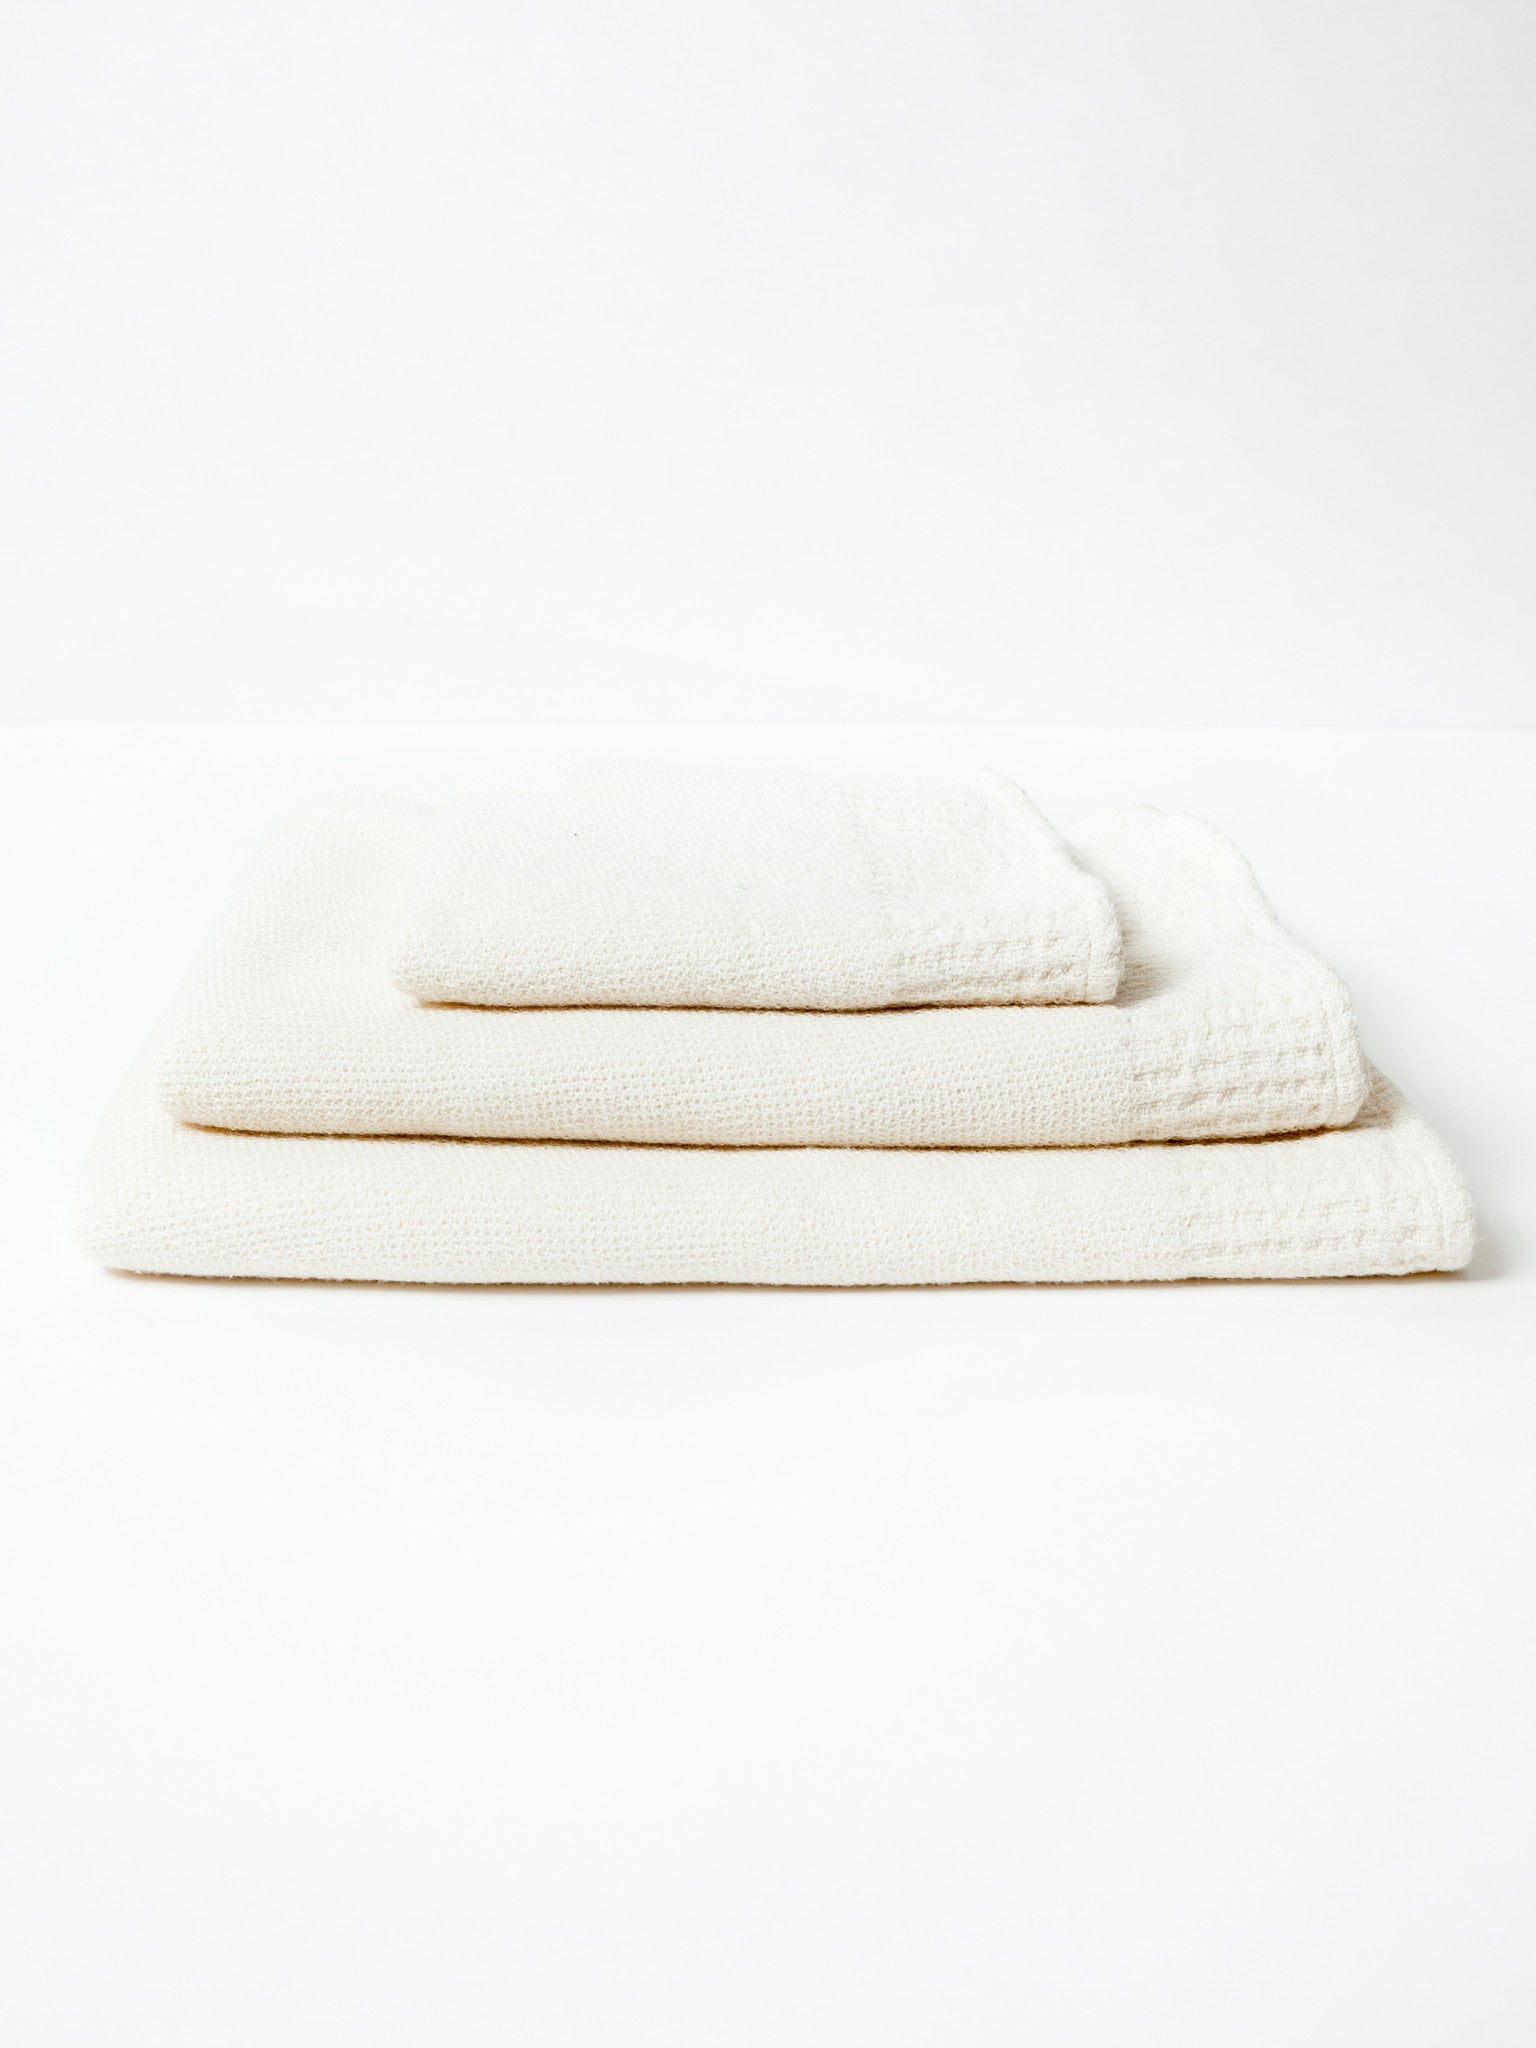 Aile Towel - rikumo japan made